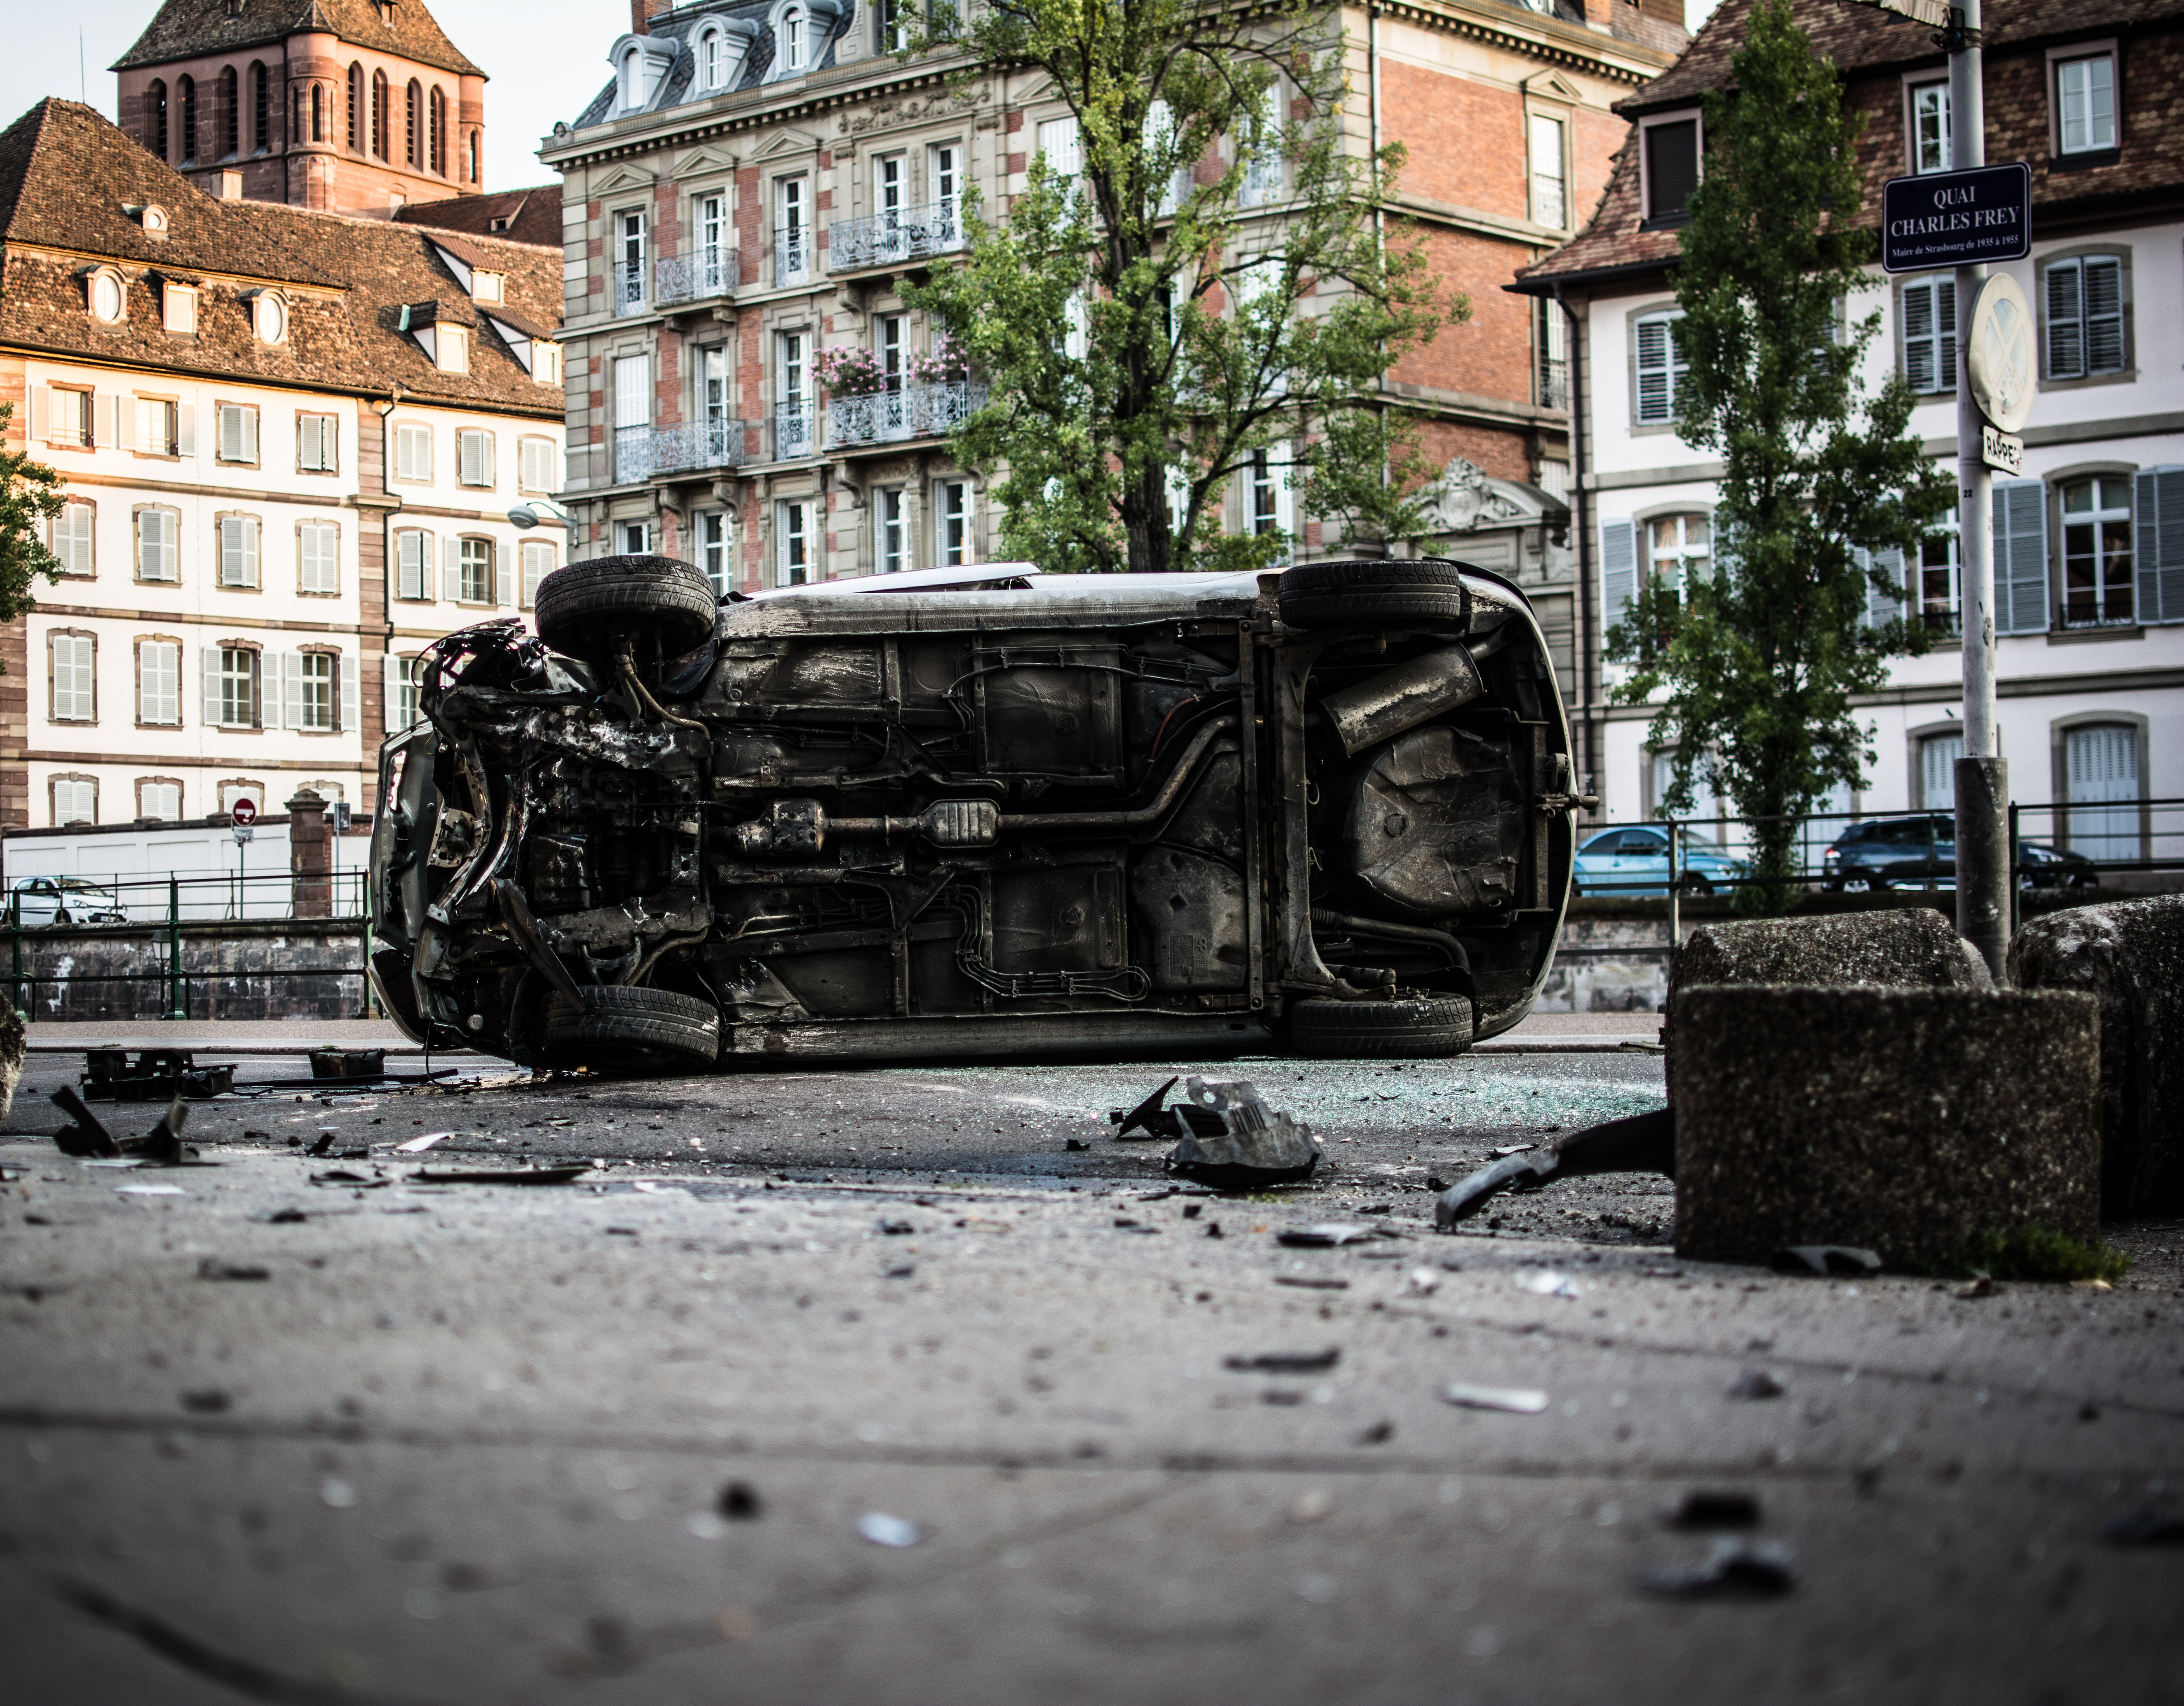 wrecked white vehicle near buildings during daytime